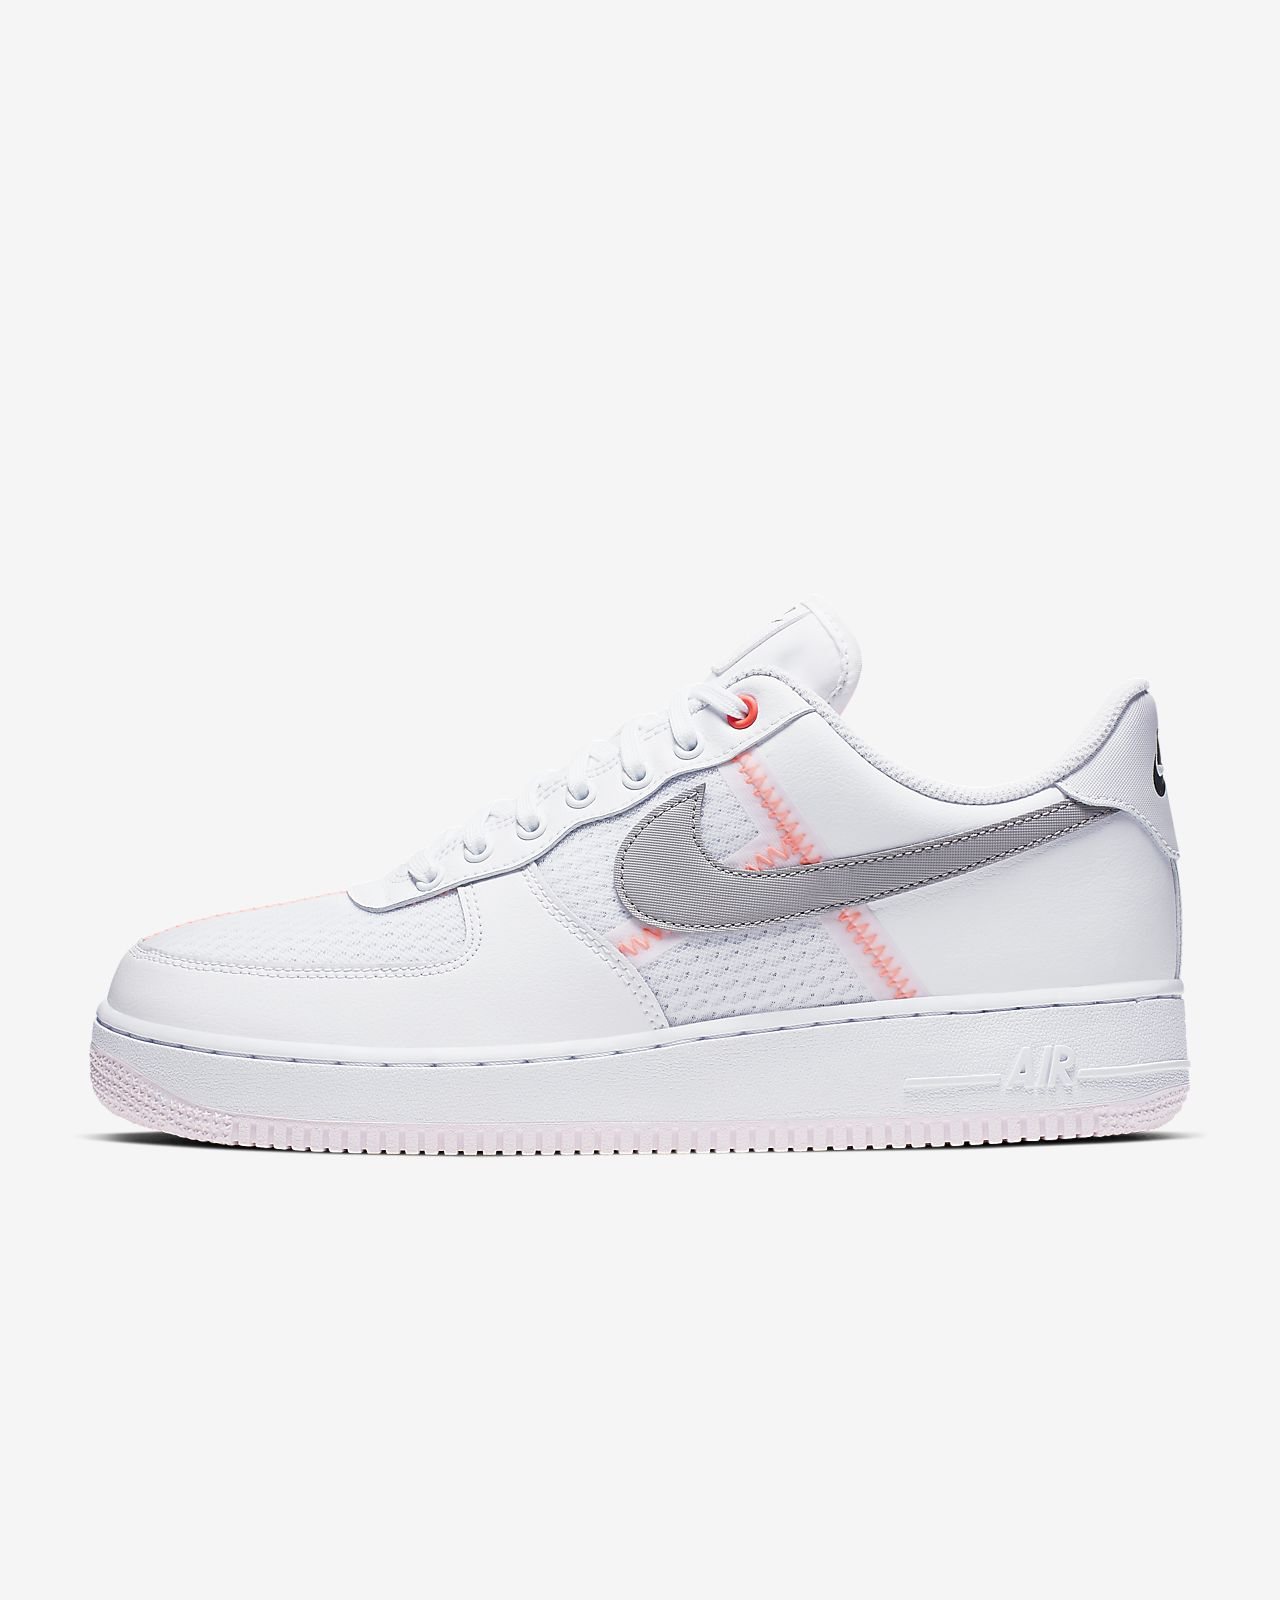 nike air force 1 07 lv8 sneaker low